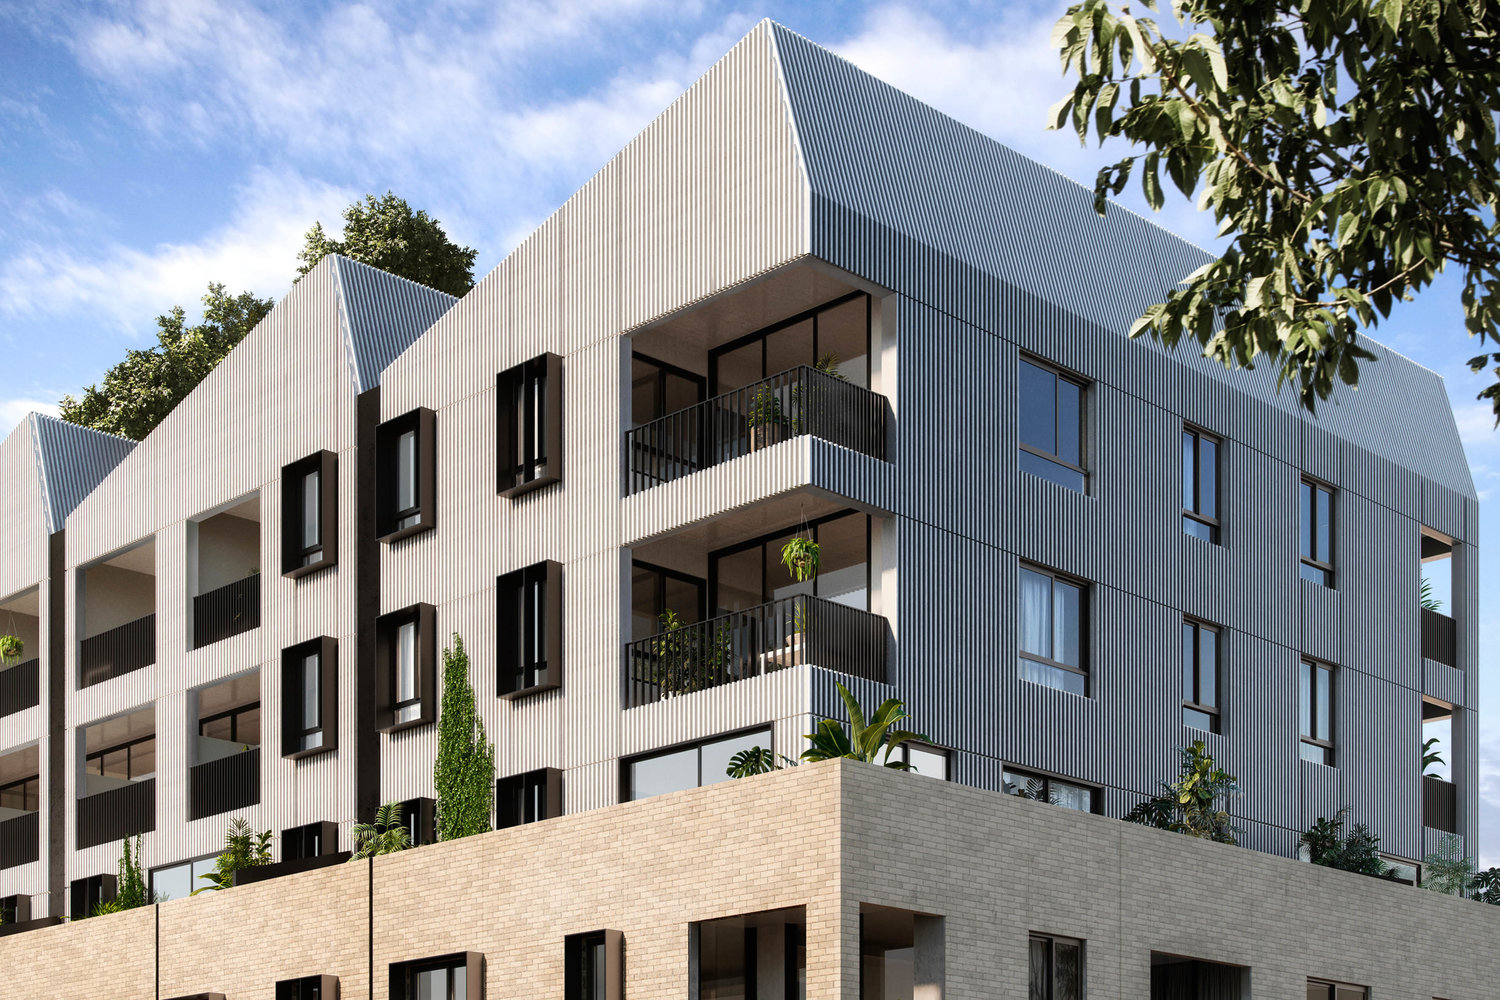 Breese st Apartments article for Green mag